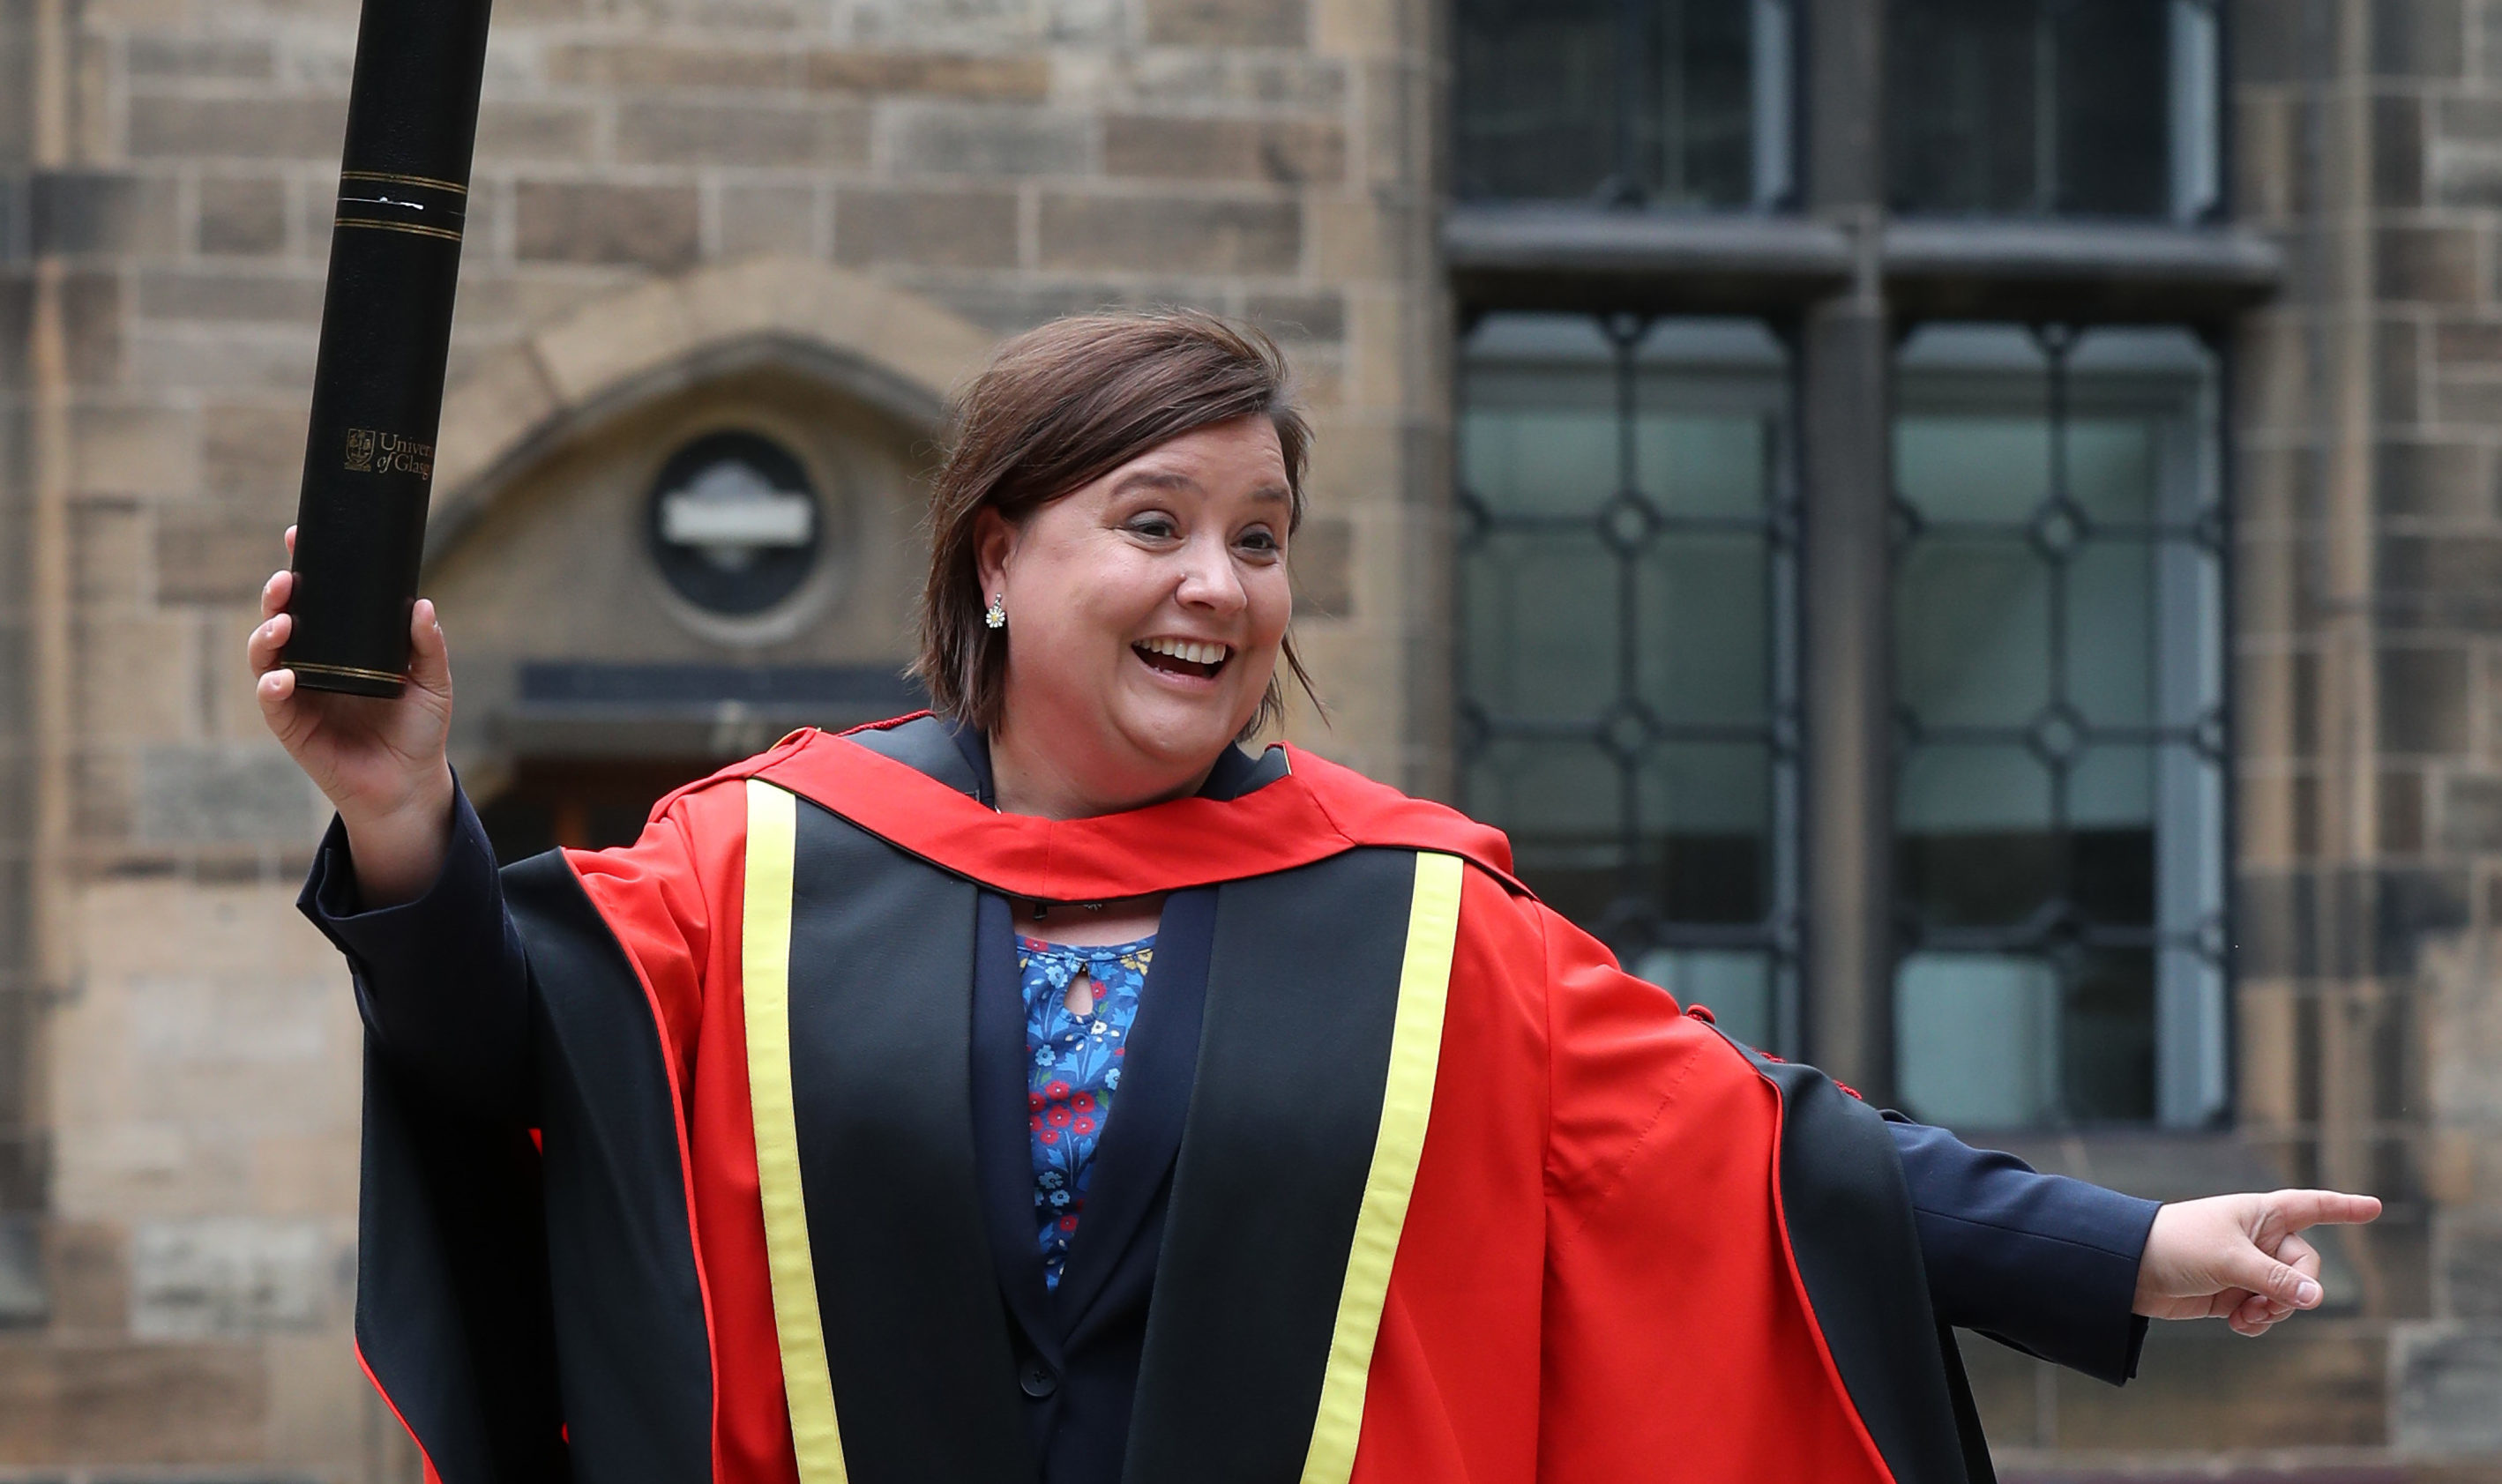 Comedian and broadcaster Susan Calman was awarded her degree for her work not only as a broadcaster and comedian but for for highlighting mental health issues and LGBT rights (Andrew Milligan/PA Wire)